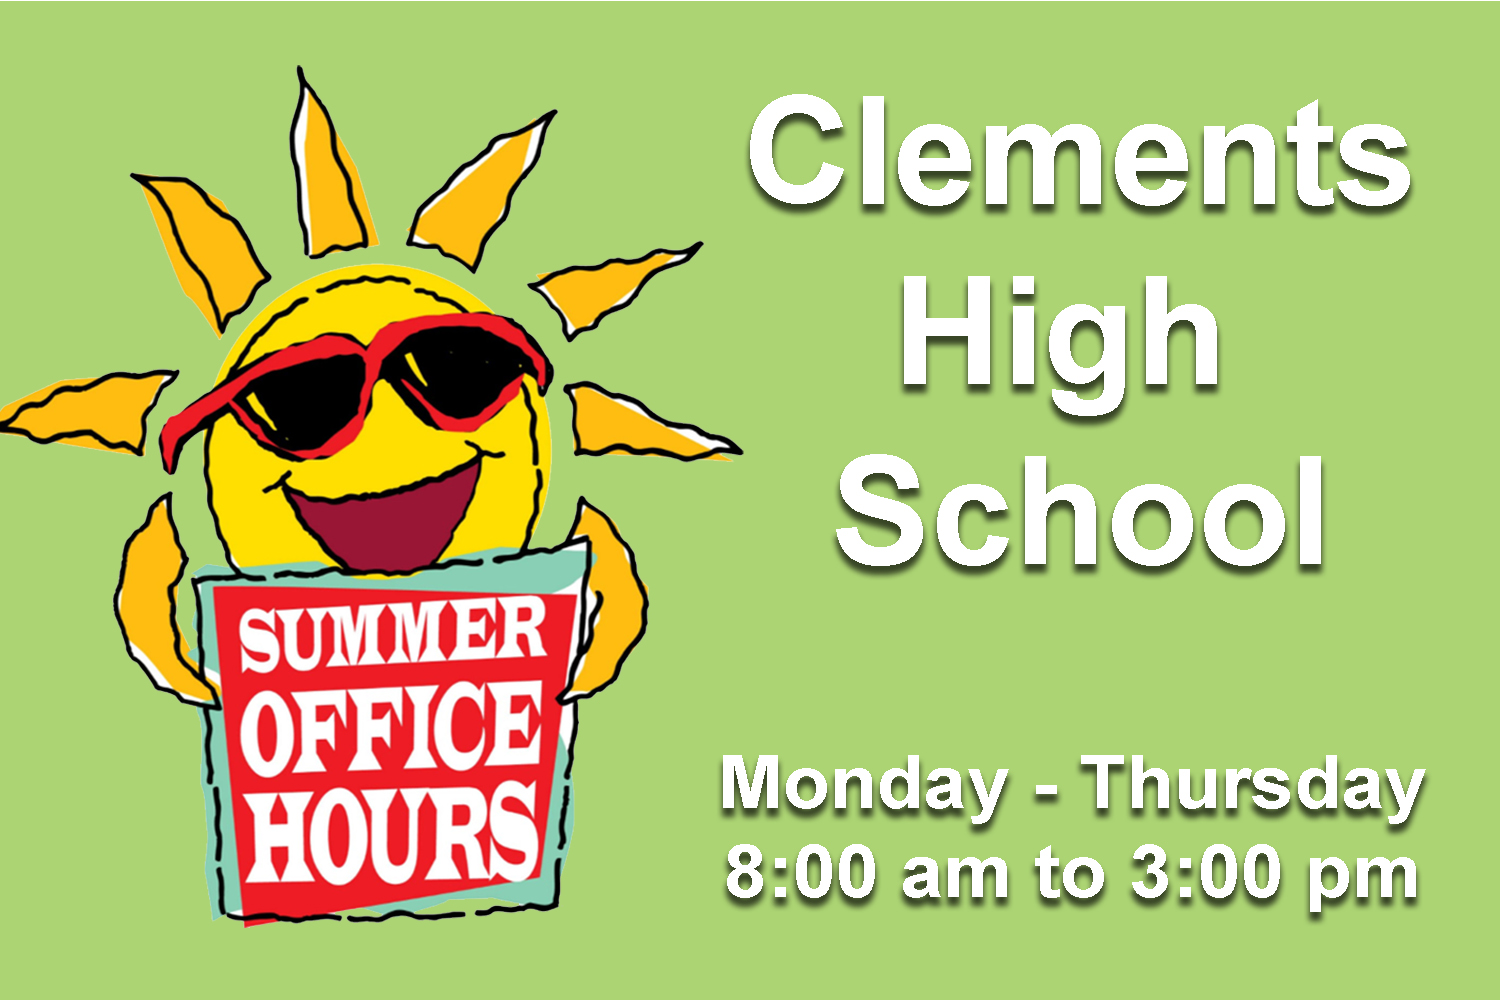 CHS Office Summer Hours